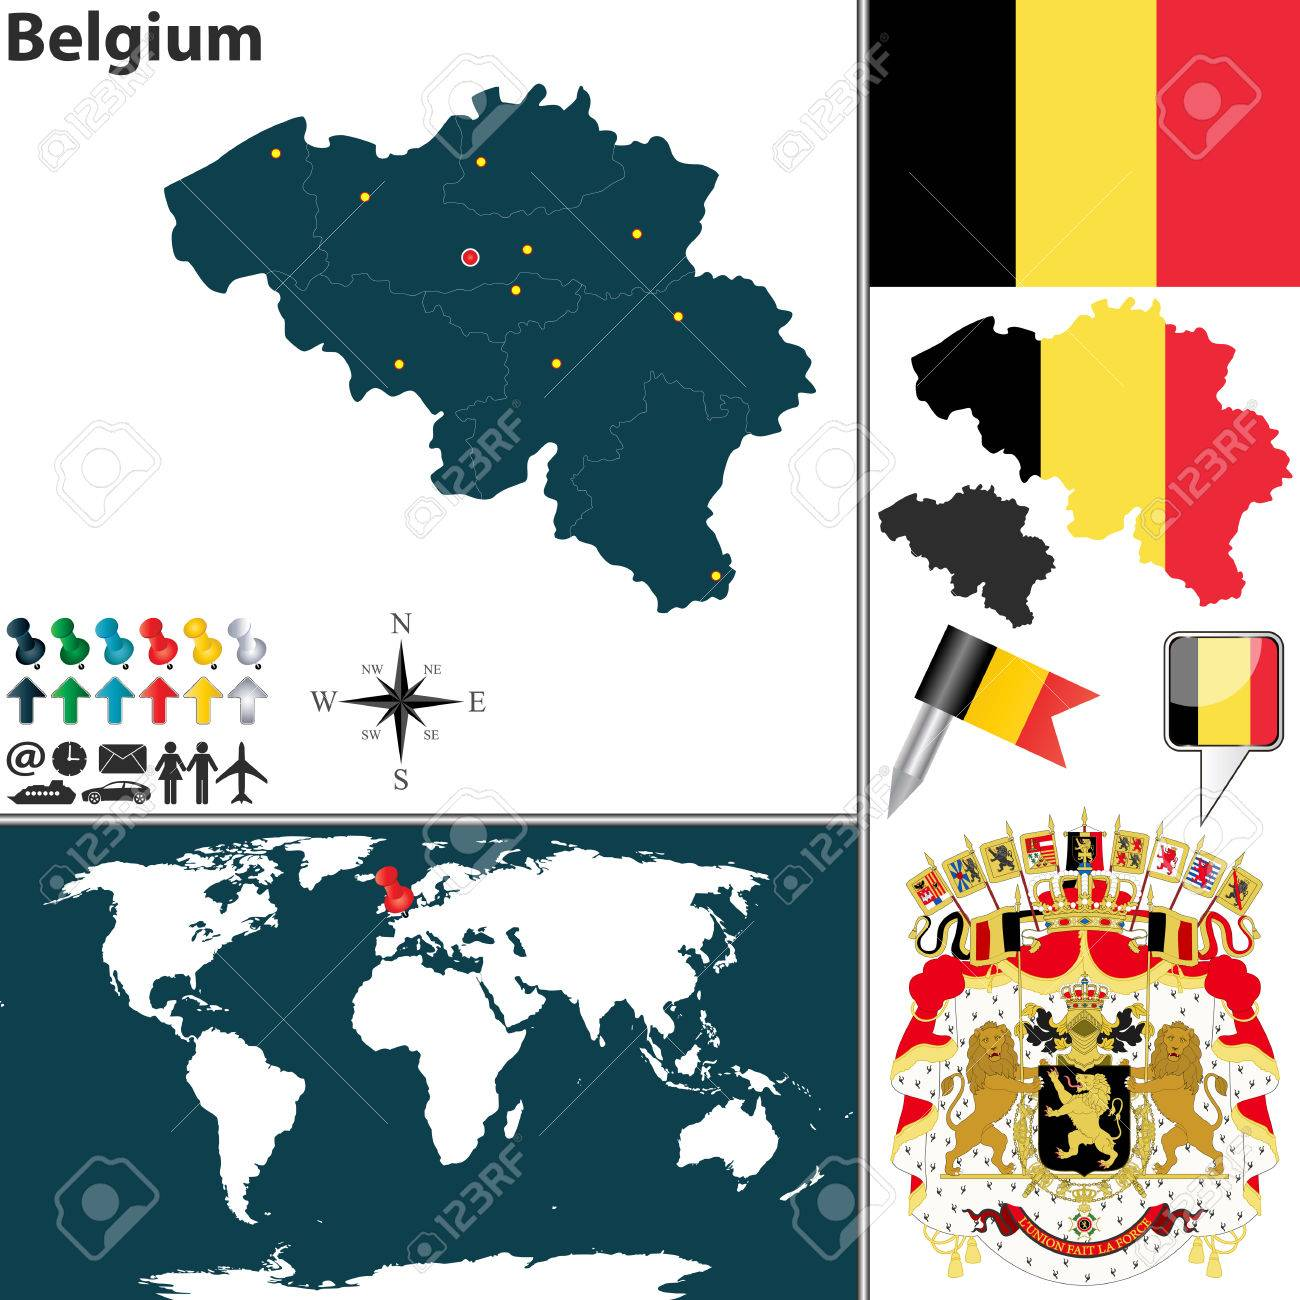 Atlas Brussels Images Stock Pictures Royalty Free Atlas - Brussels location on world map